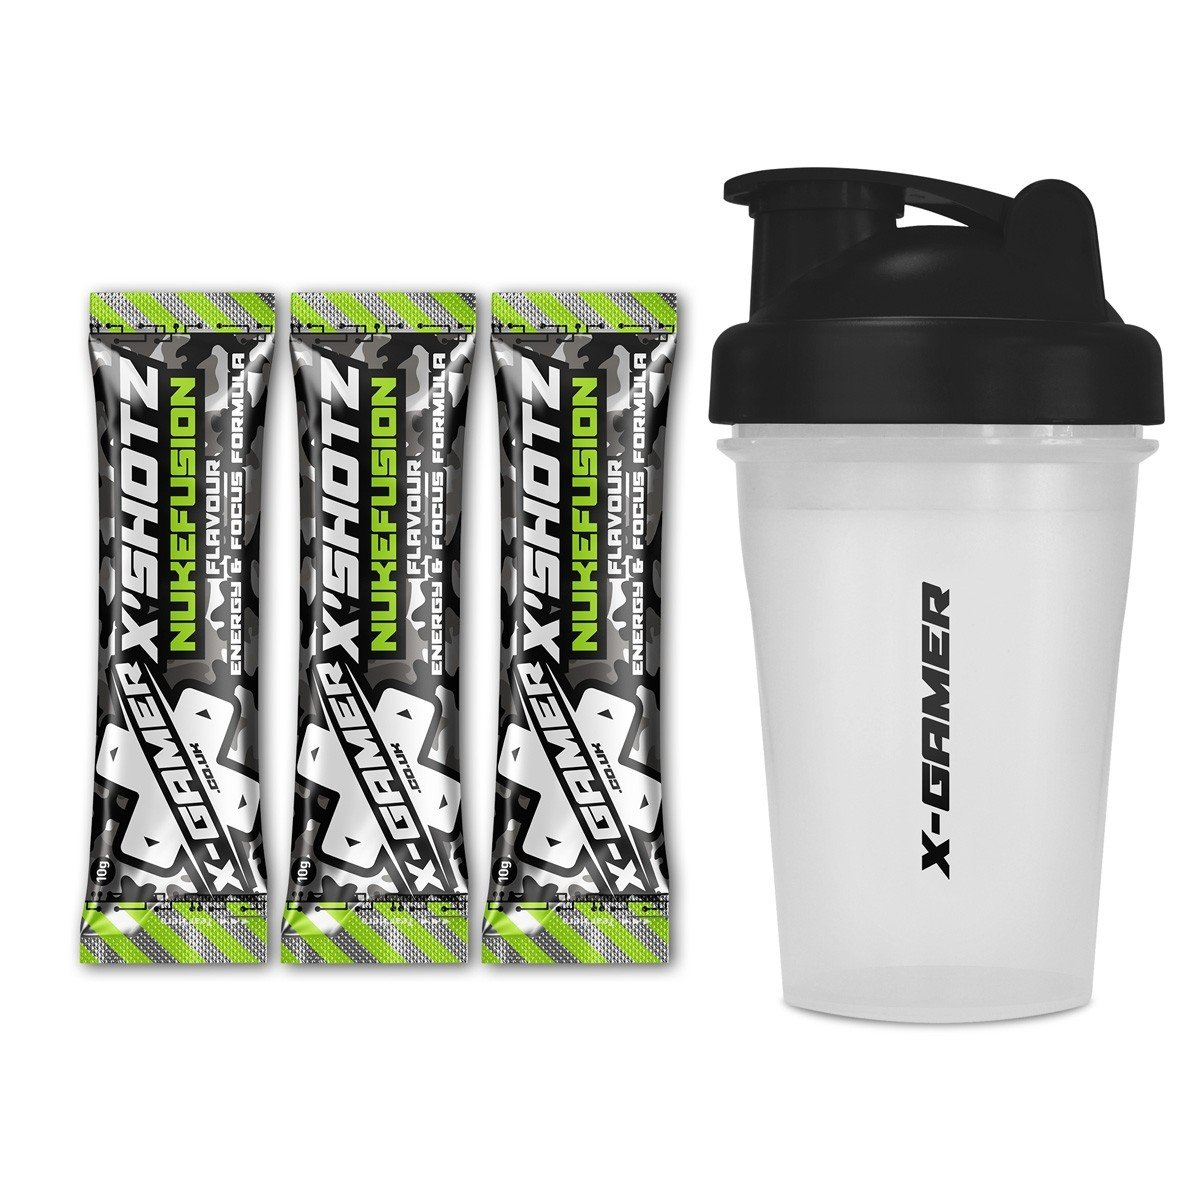 X-Gamer   X-Shotz Nukefusion (3 Pack) with X-Shakez Shaker   Nukefusion Flavored Focus and Energy-Drink Beverage for Gamers and E-Sports Enthusiasts   27 Multi-Vitamin Complex   Zero Added Sugar